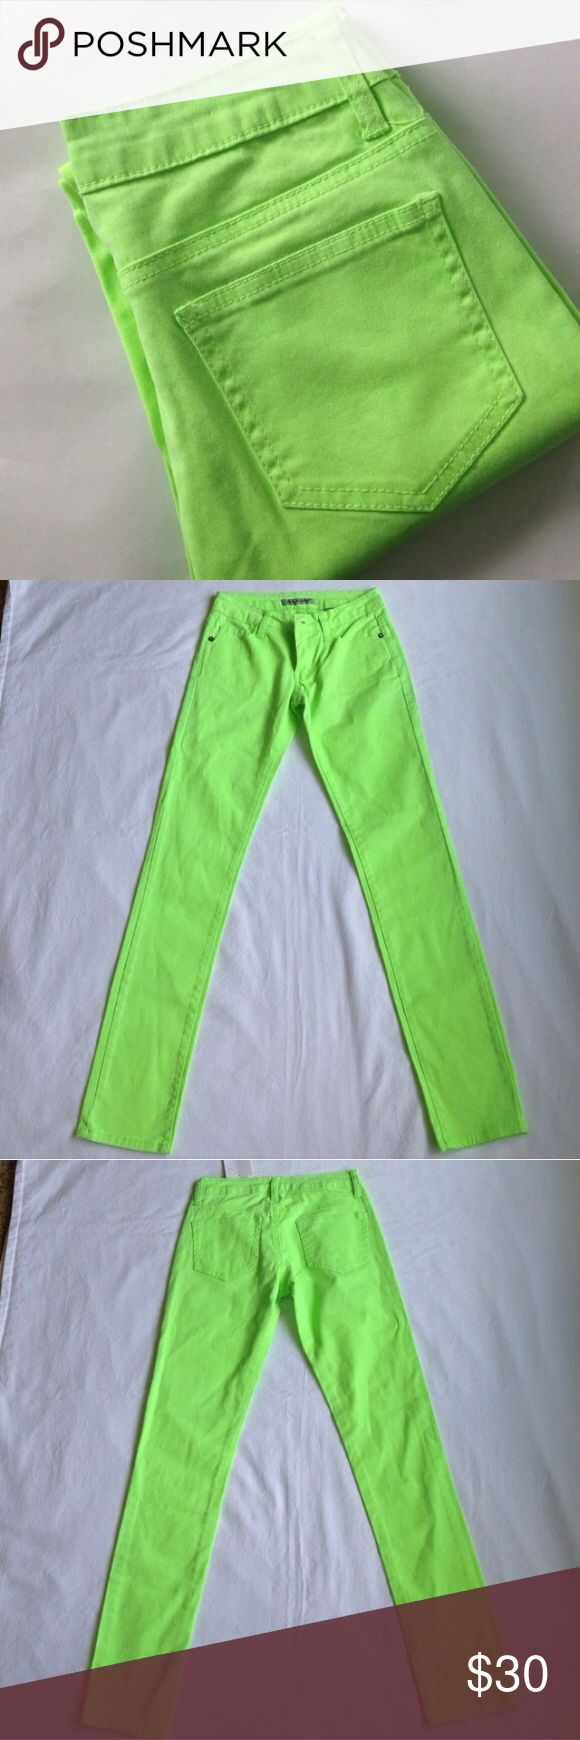 """Neon Green Skinny Jeans Emperial neon green jeans. Add your favorite sweater or scarf to wear for fall.                          Size 1.       98% cotton. 4% spandex. Some stretch.                                                                       12"""" waist, 30"""" inseam, 7"""" rise. emperial Jeans Skinny"""